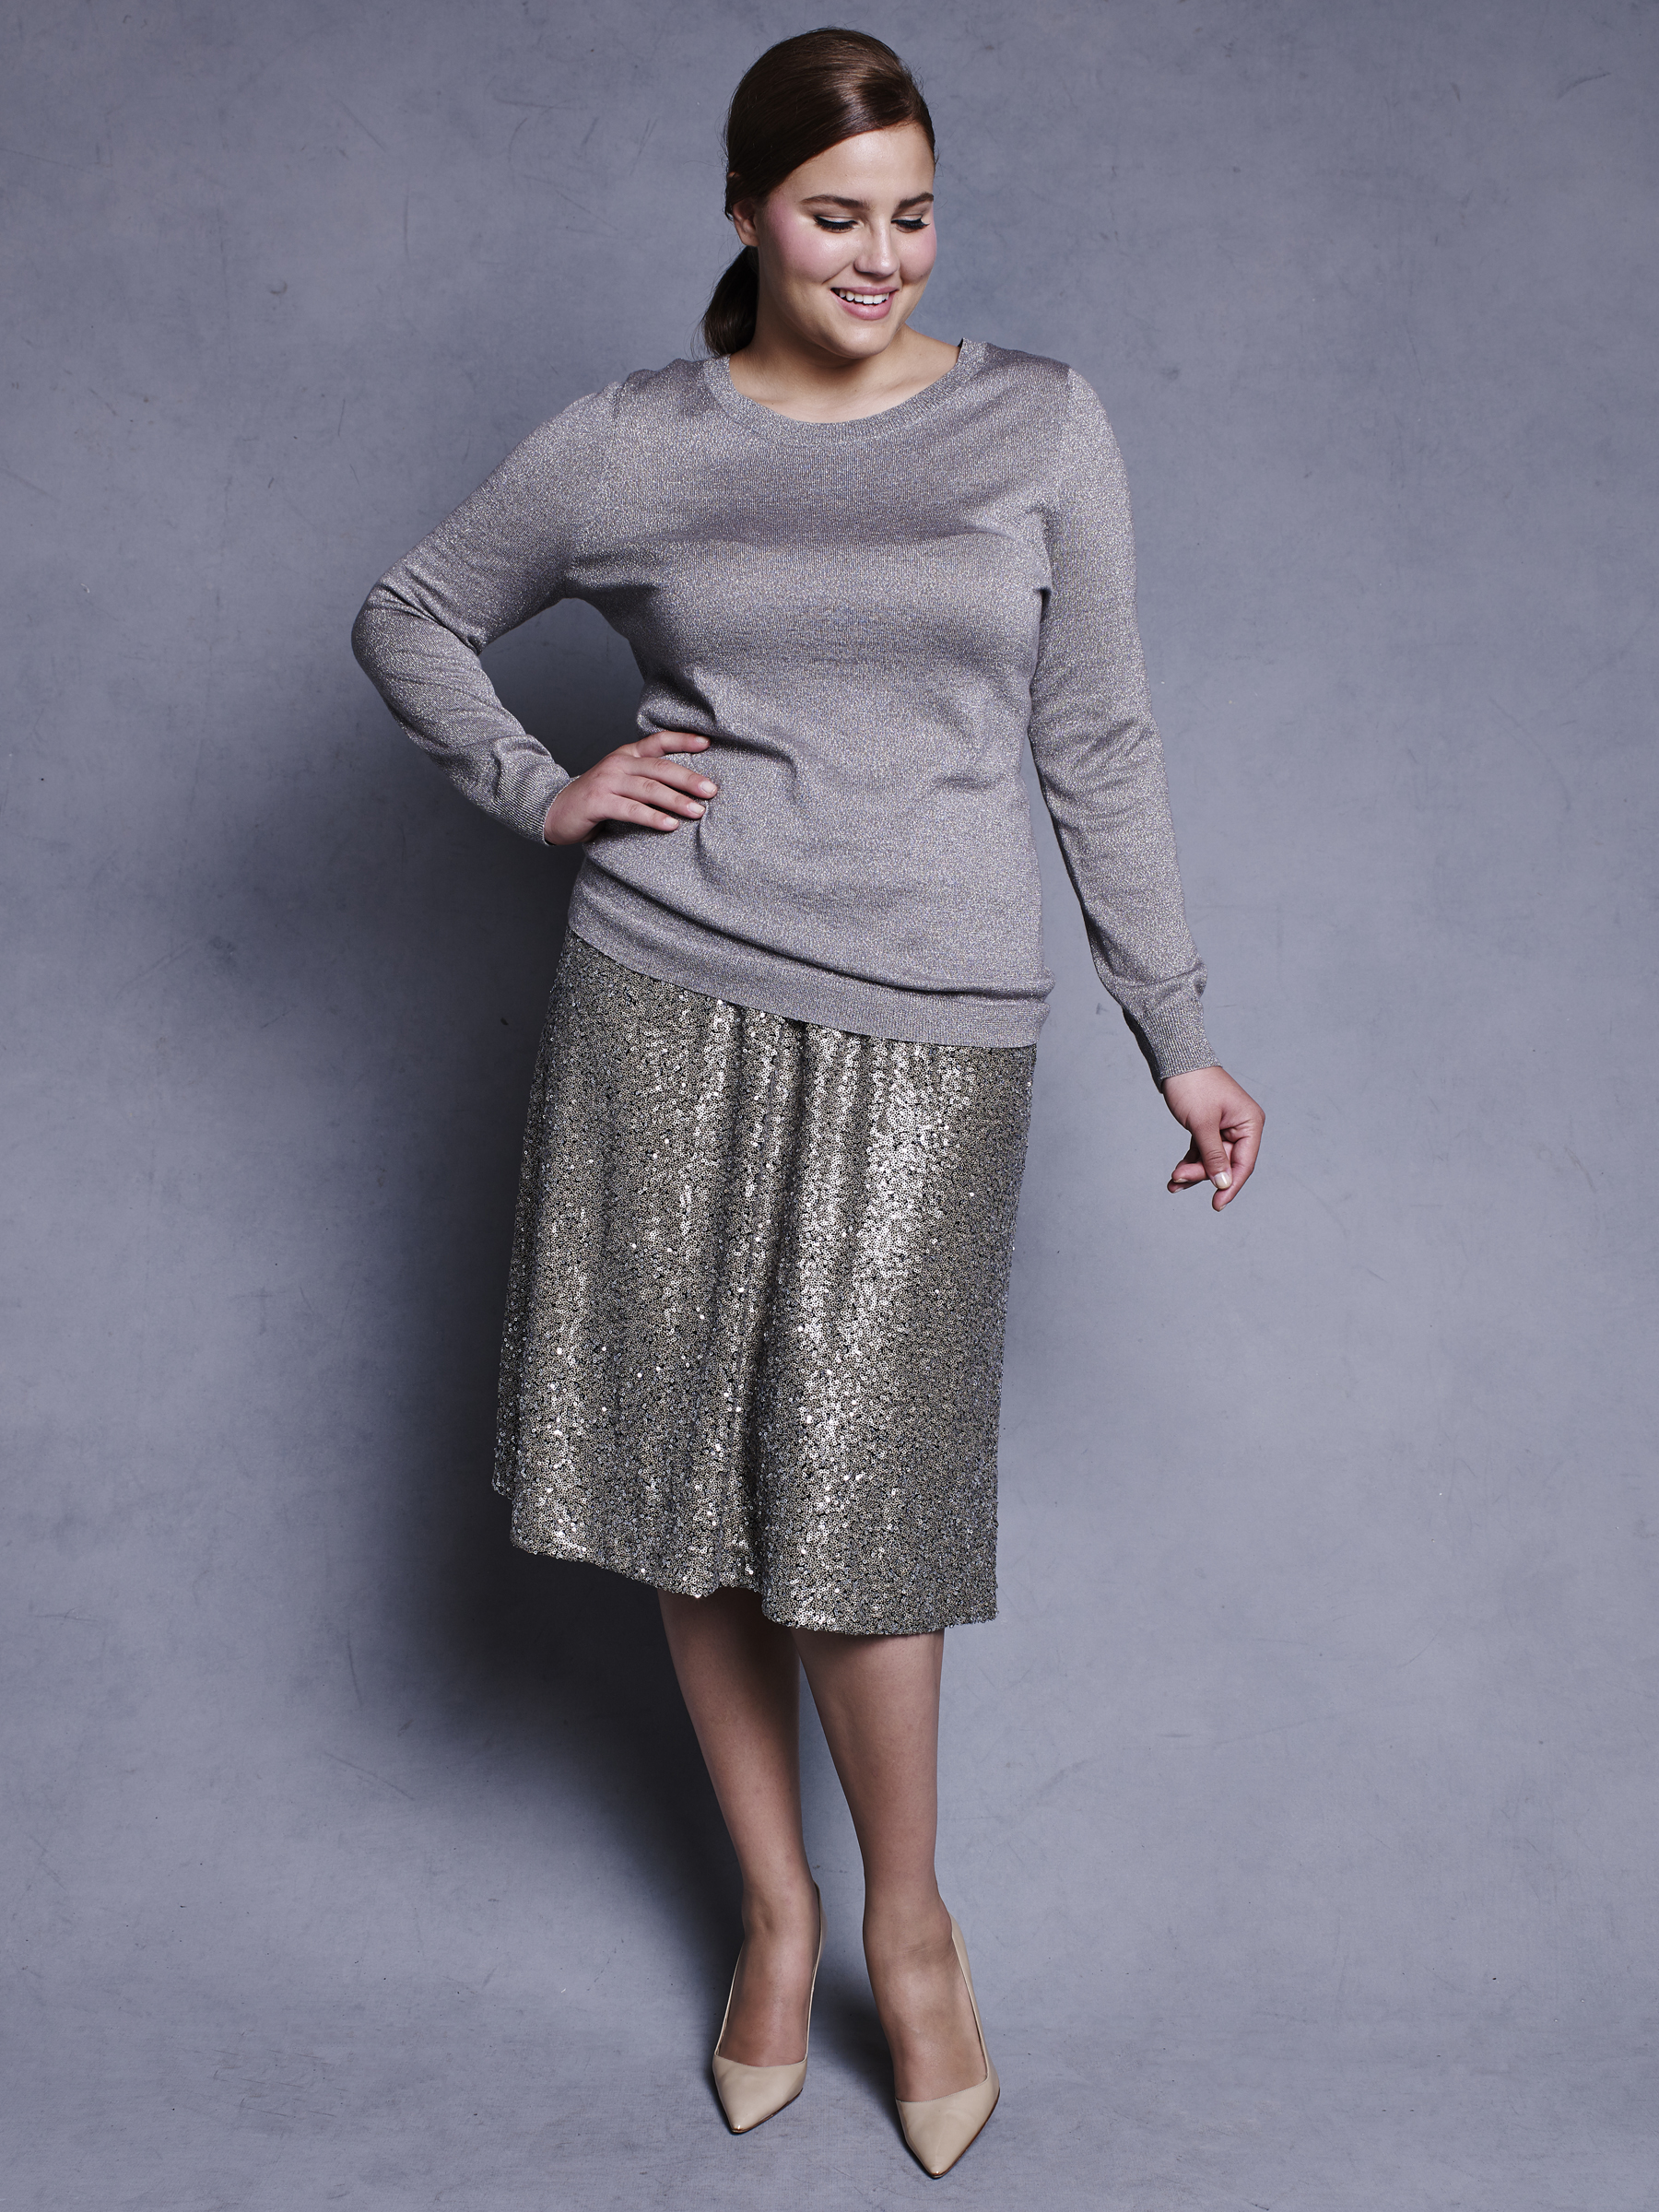 6d4fca7b6ef Lela Rose Teams Up With Lane Bryant For A Holiday Collection ...